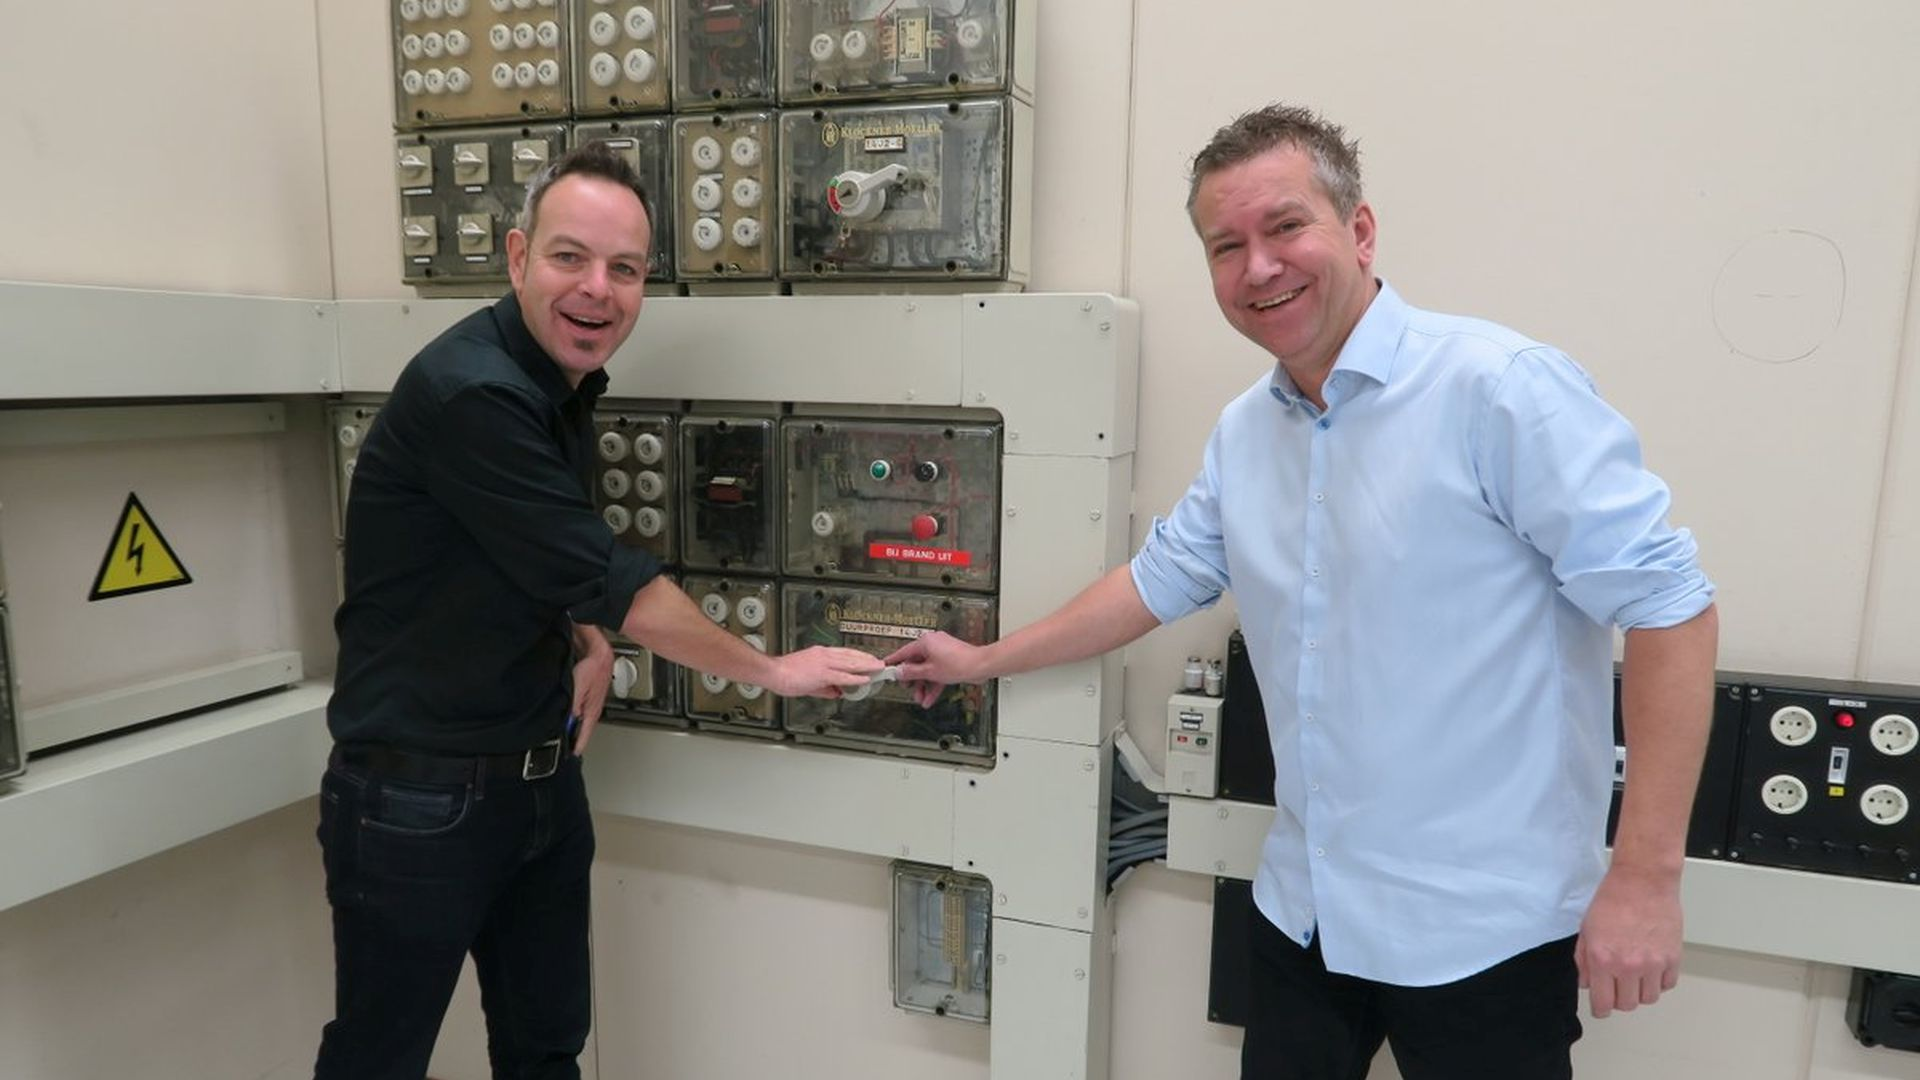 Switch on a new era in high-tech scale-ups startup High Tech Campus Eindhoven HTC 12